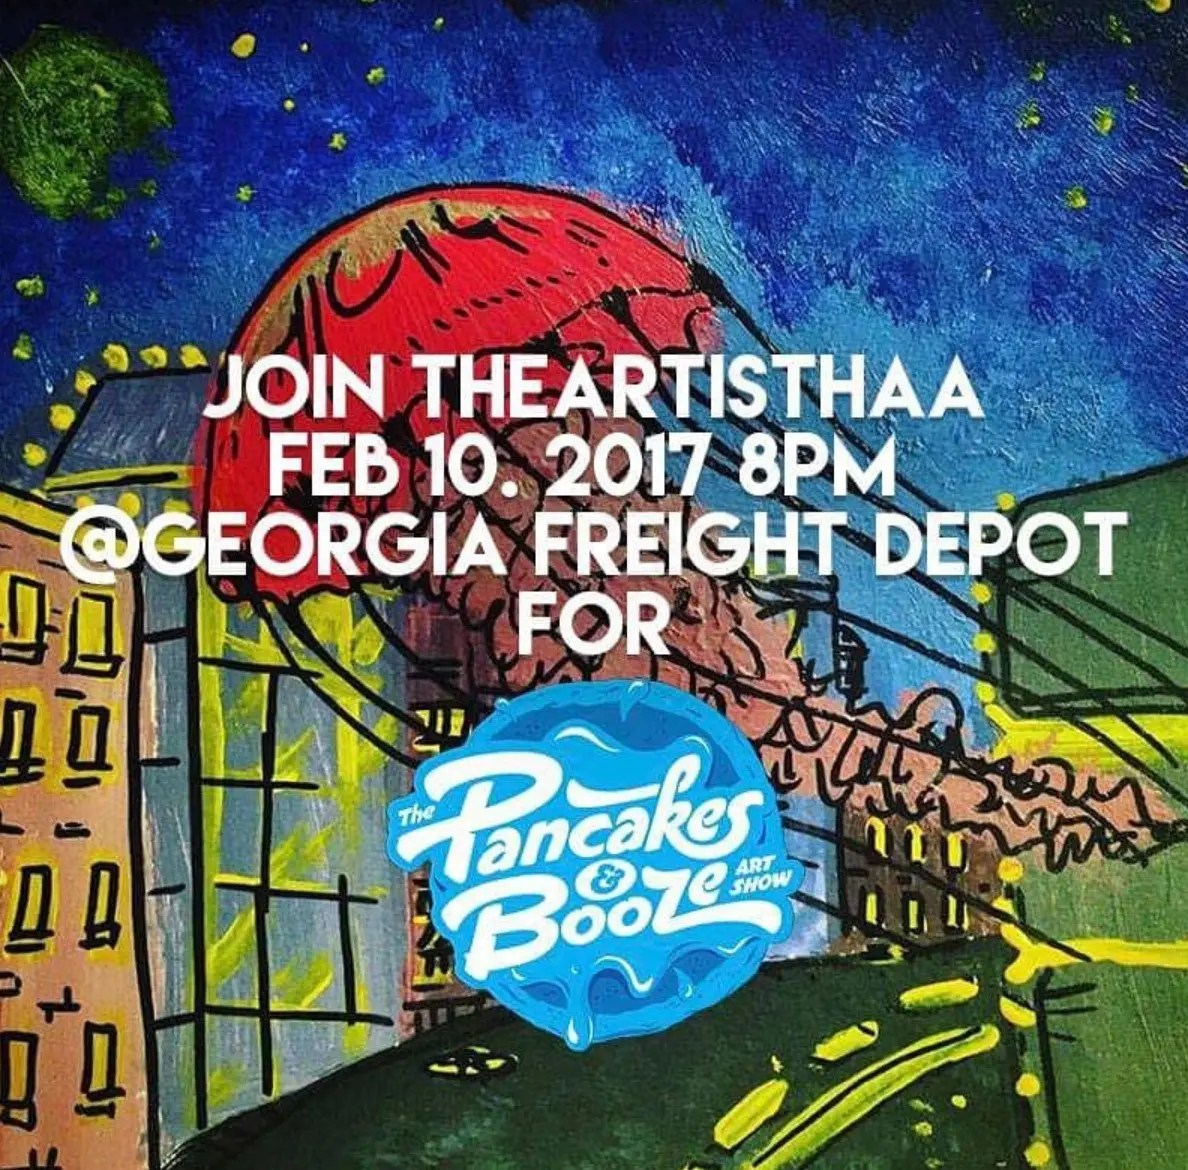 Join the artisthhaa feb 10 2017 8pm at the Georgia freight depot for pancake and booze artshow